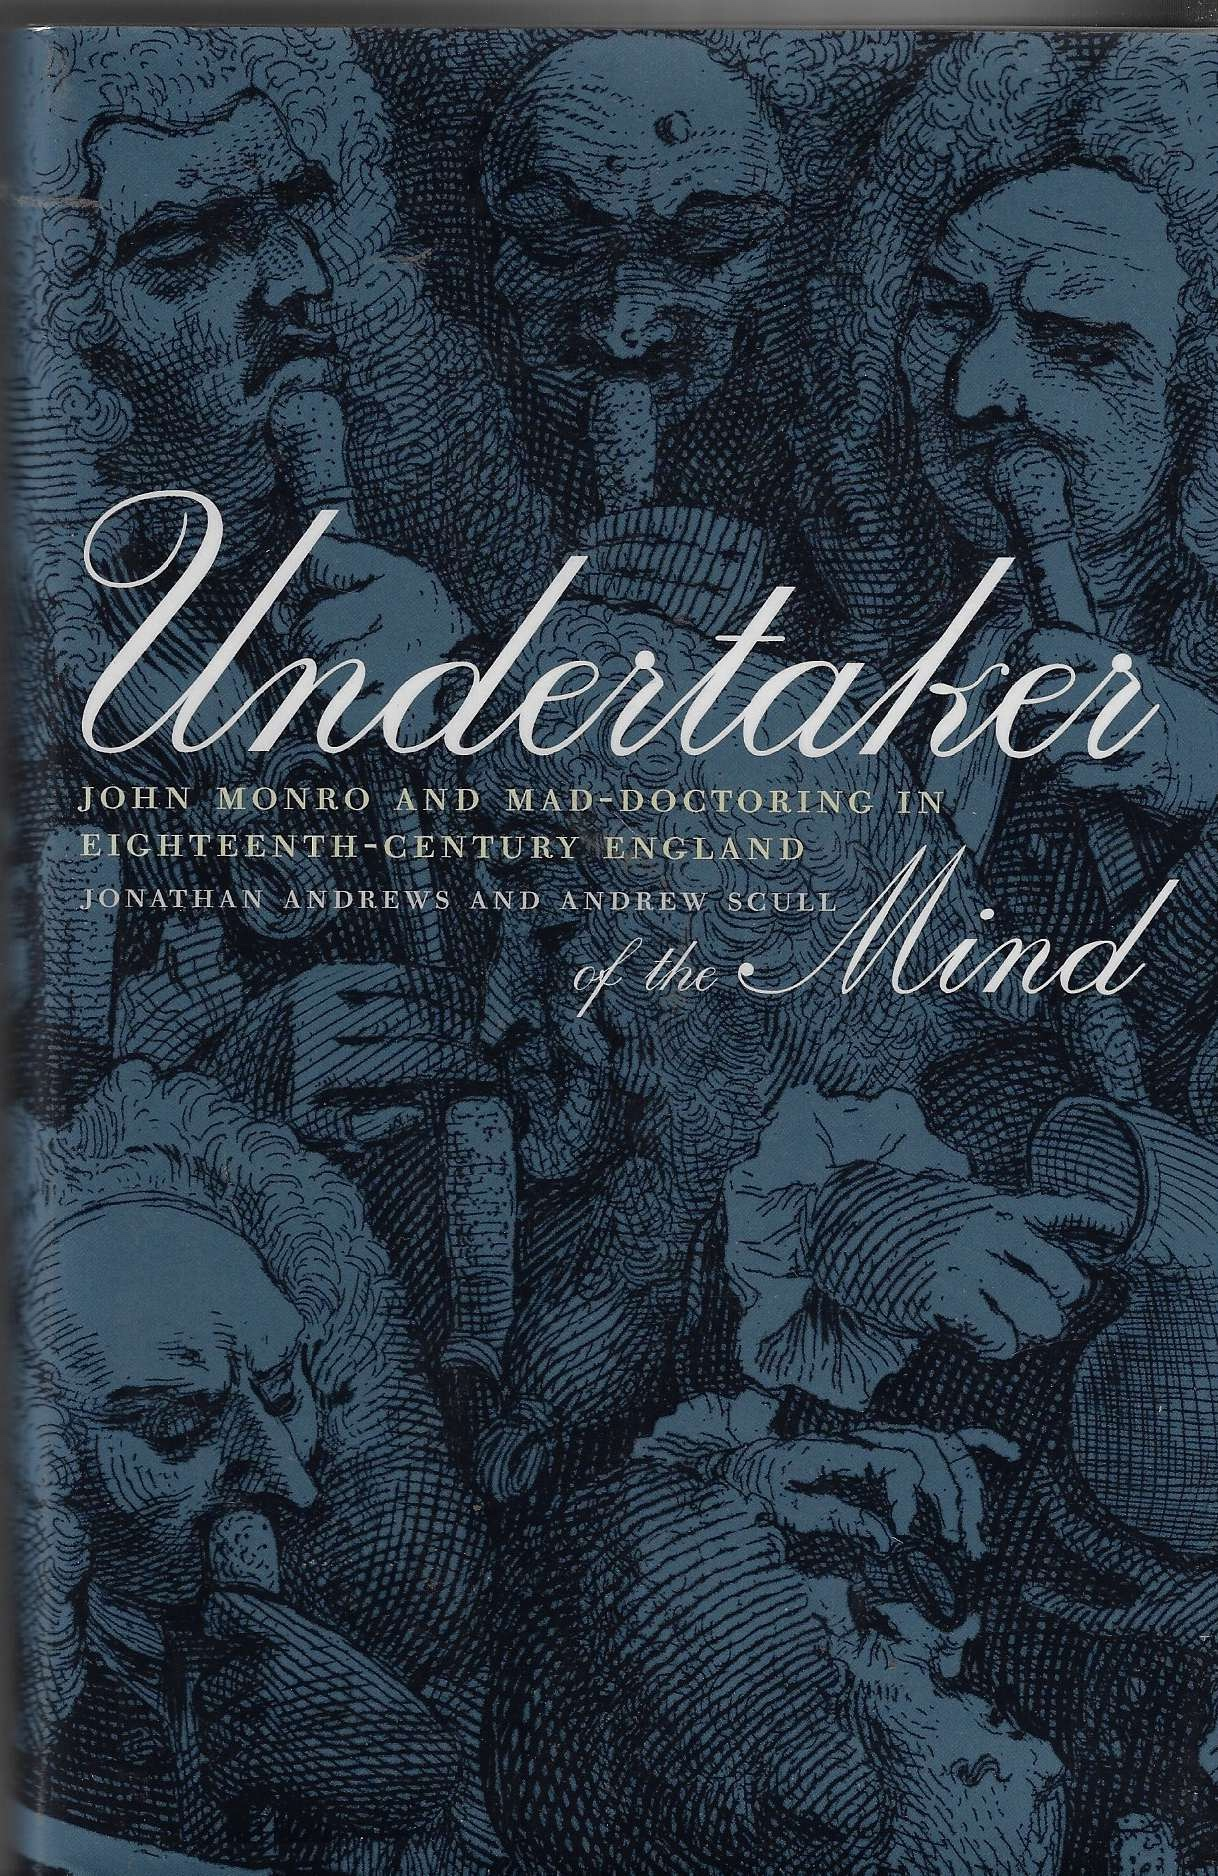 Image for Undertaker of the Mind  John Monro and Mad-Doctoring in Eighteenth-Century England